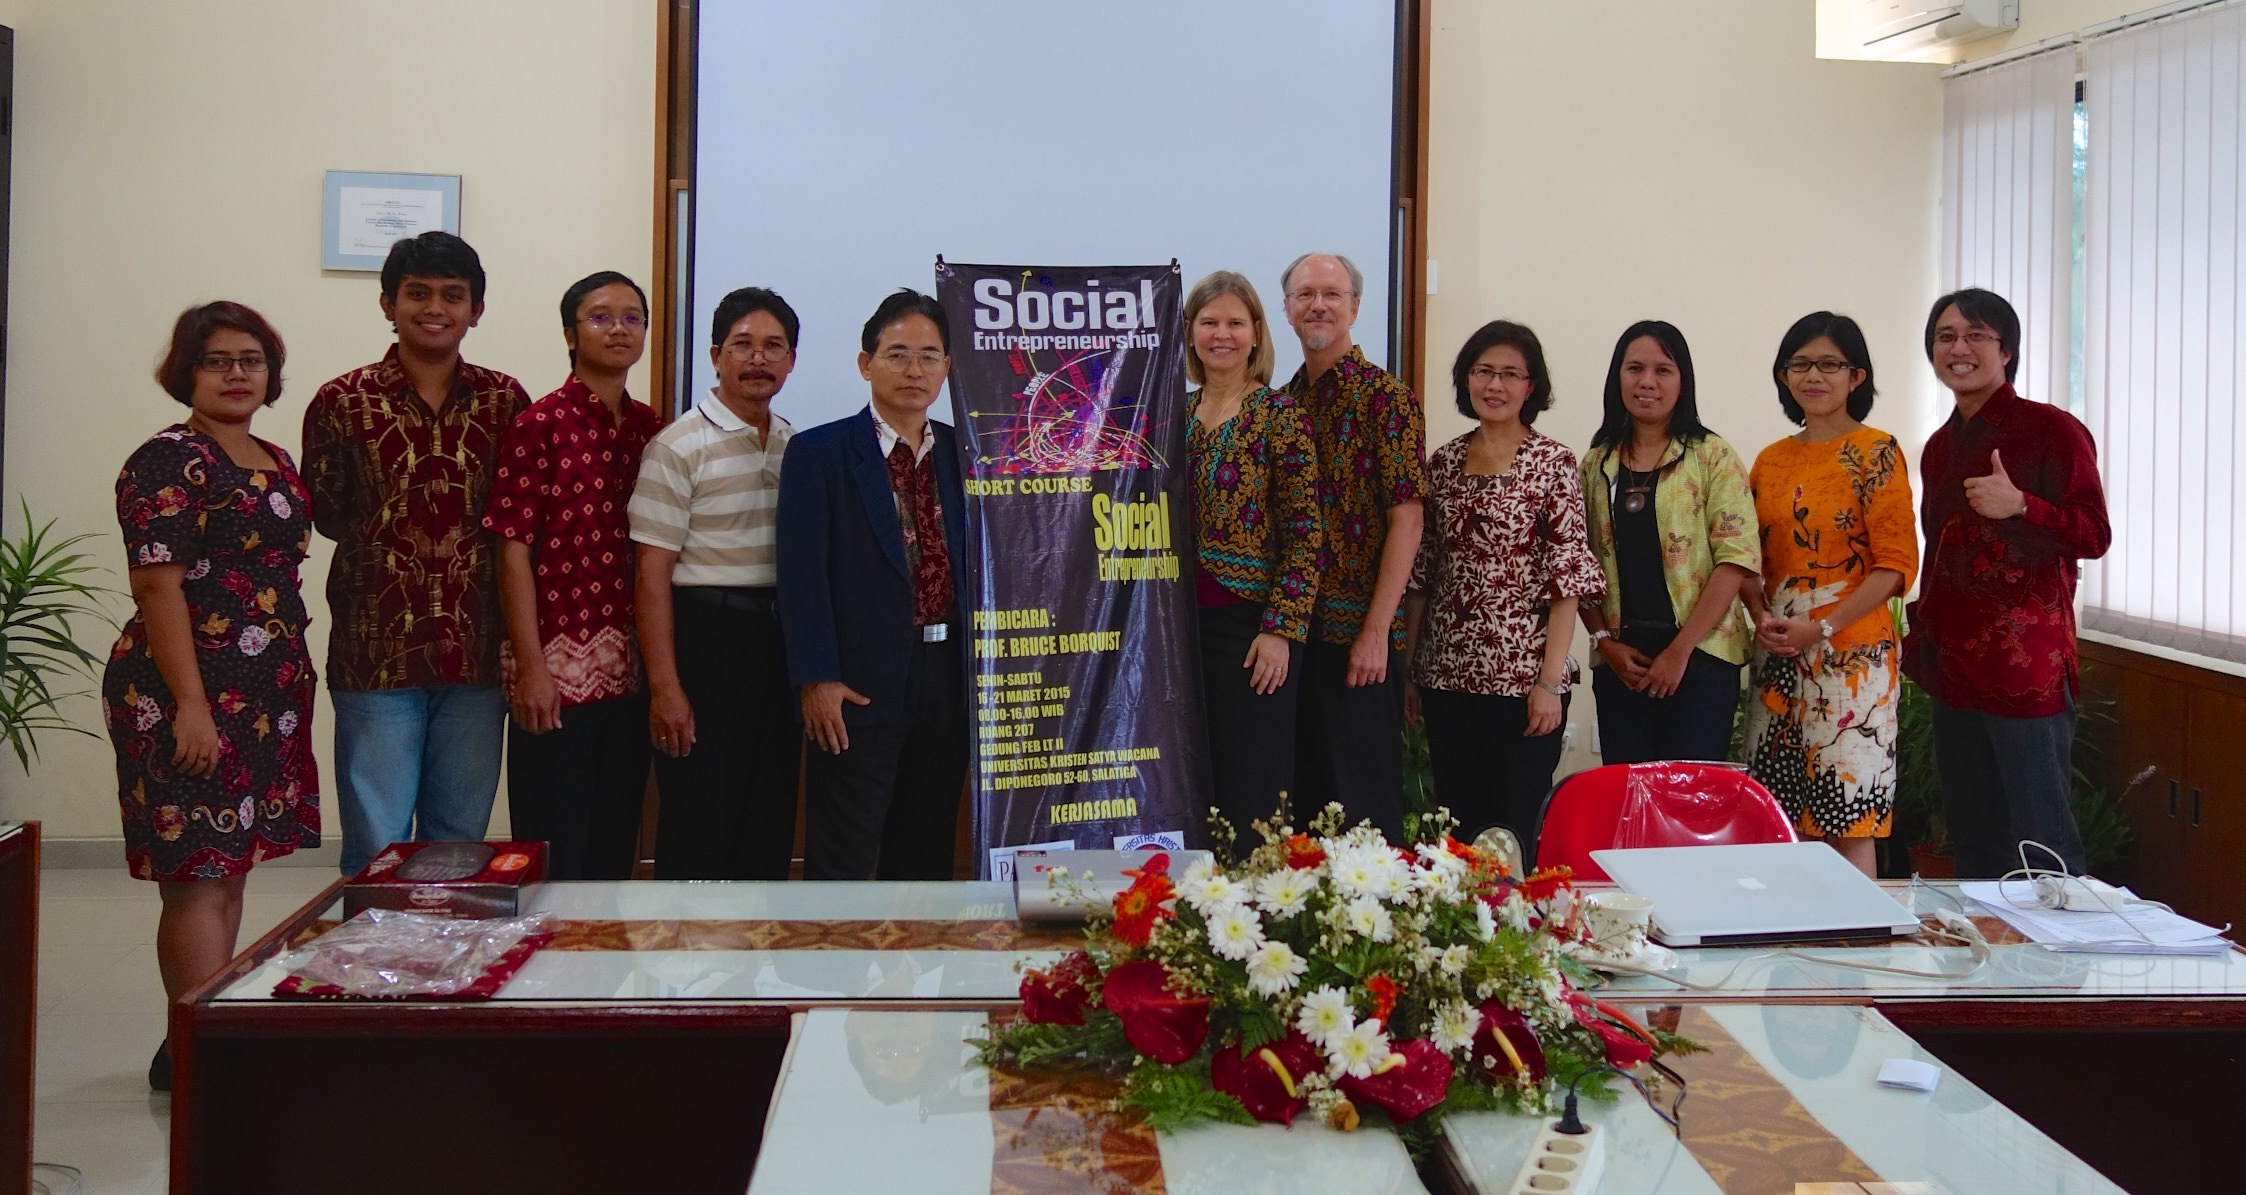 Christian Social Entrepreneurship: finding innovative ways to address pressing social problems based on Kingdom values